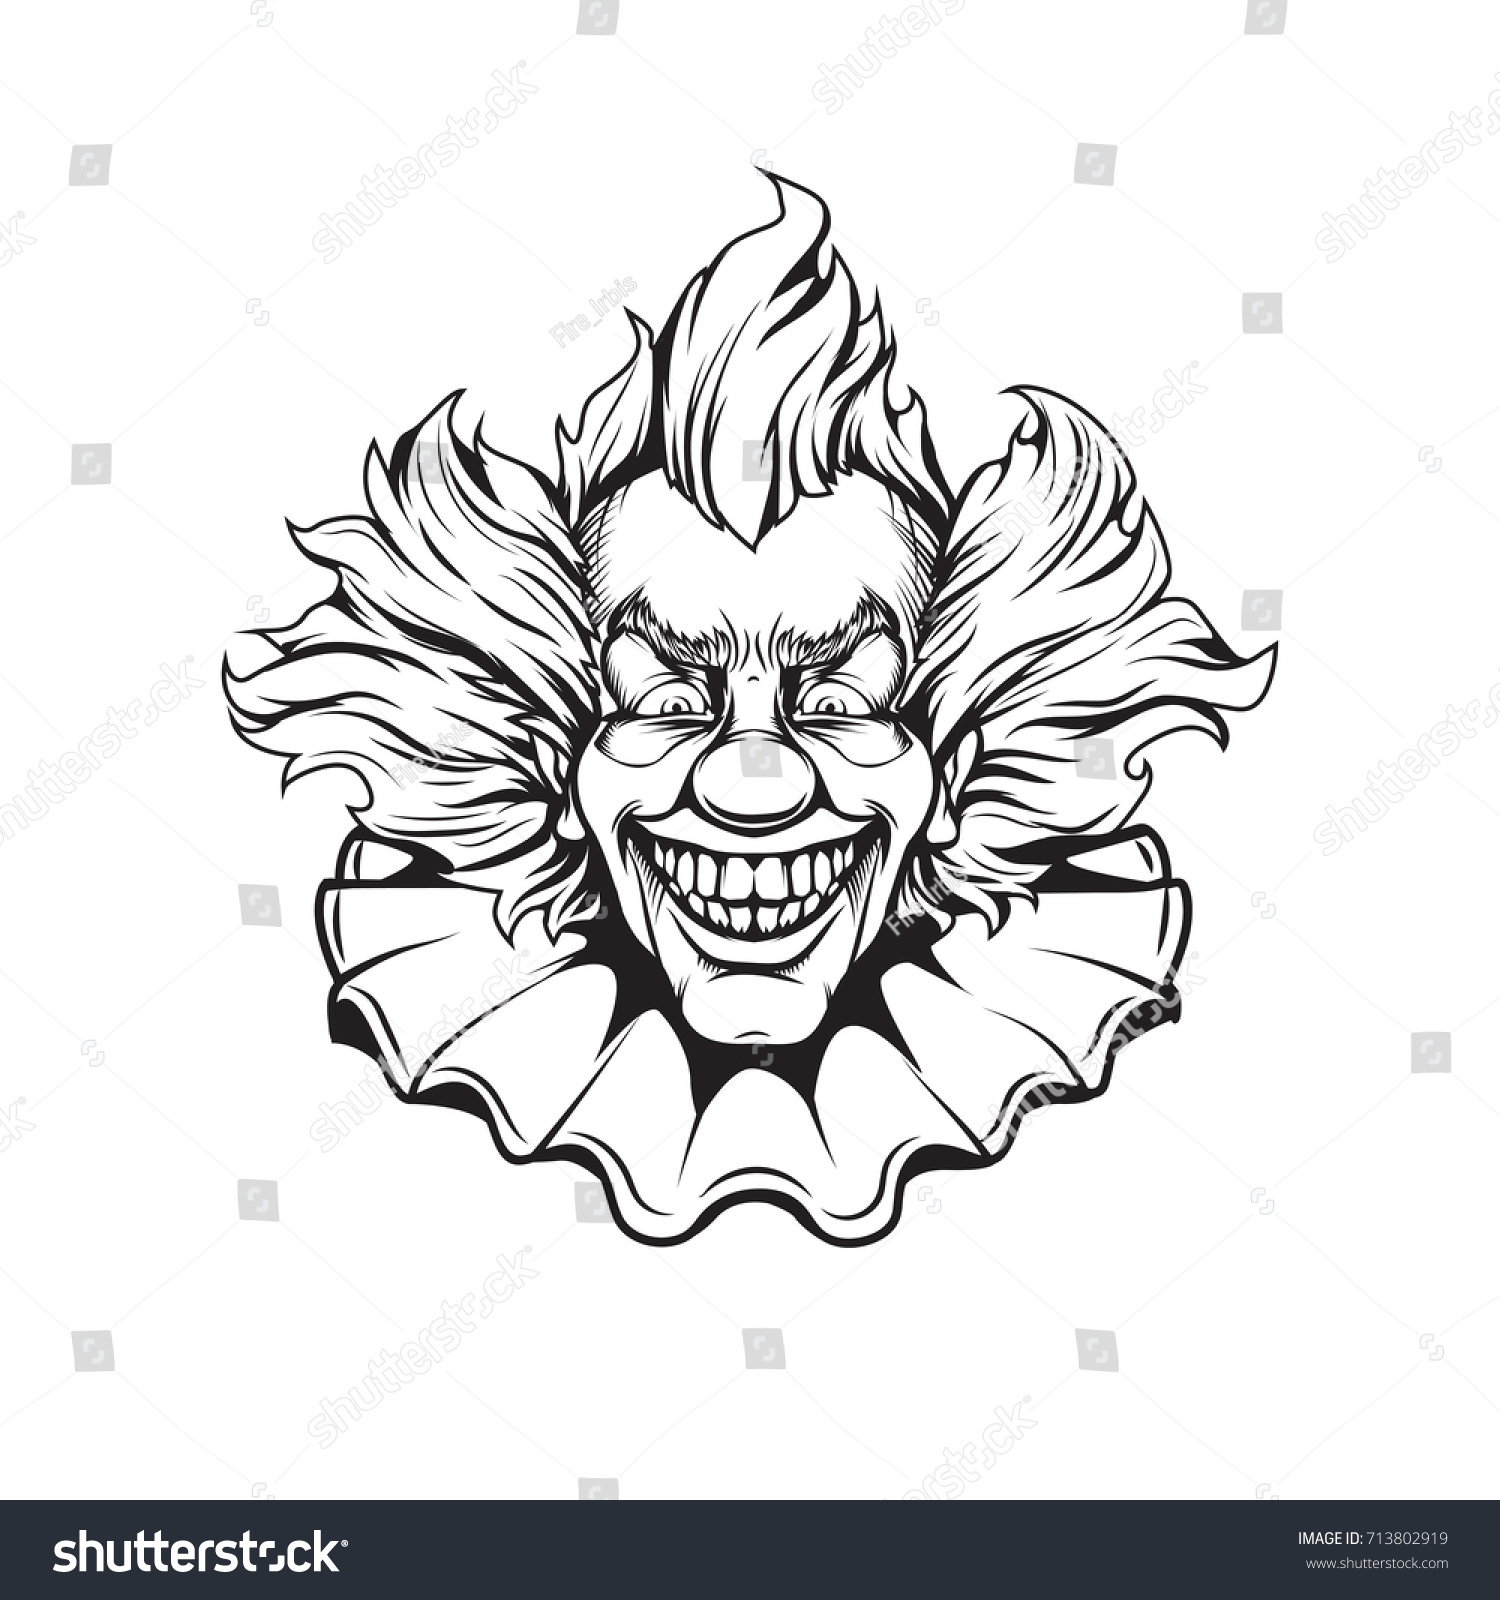 clown coloring page stock vector 713802919 shutterstock